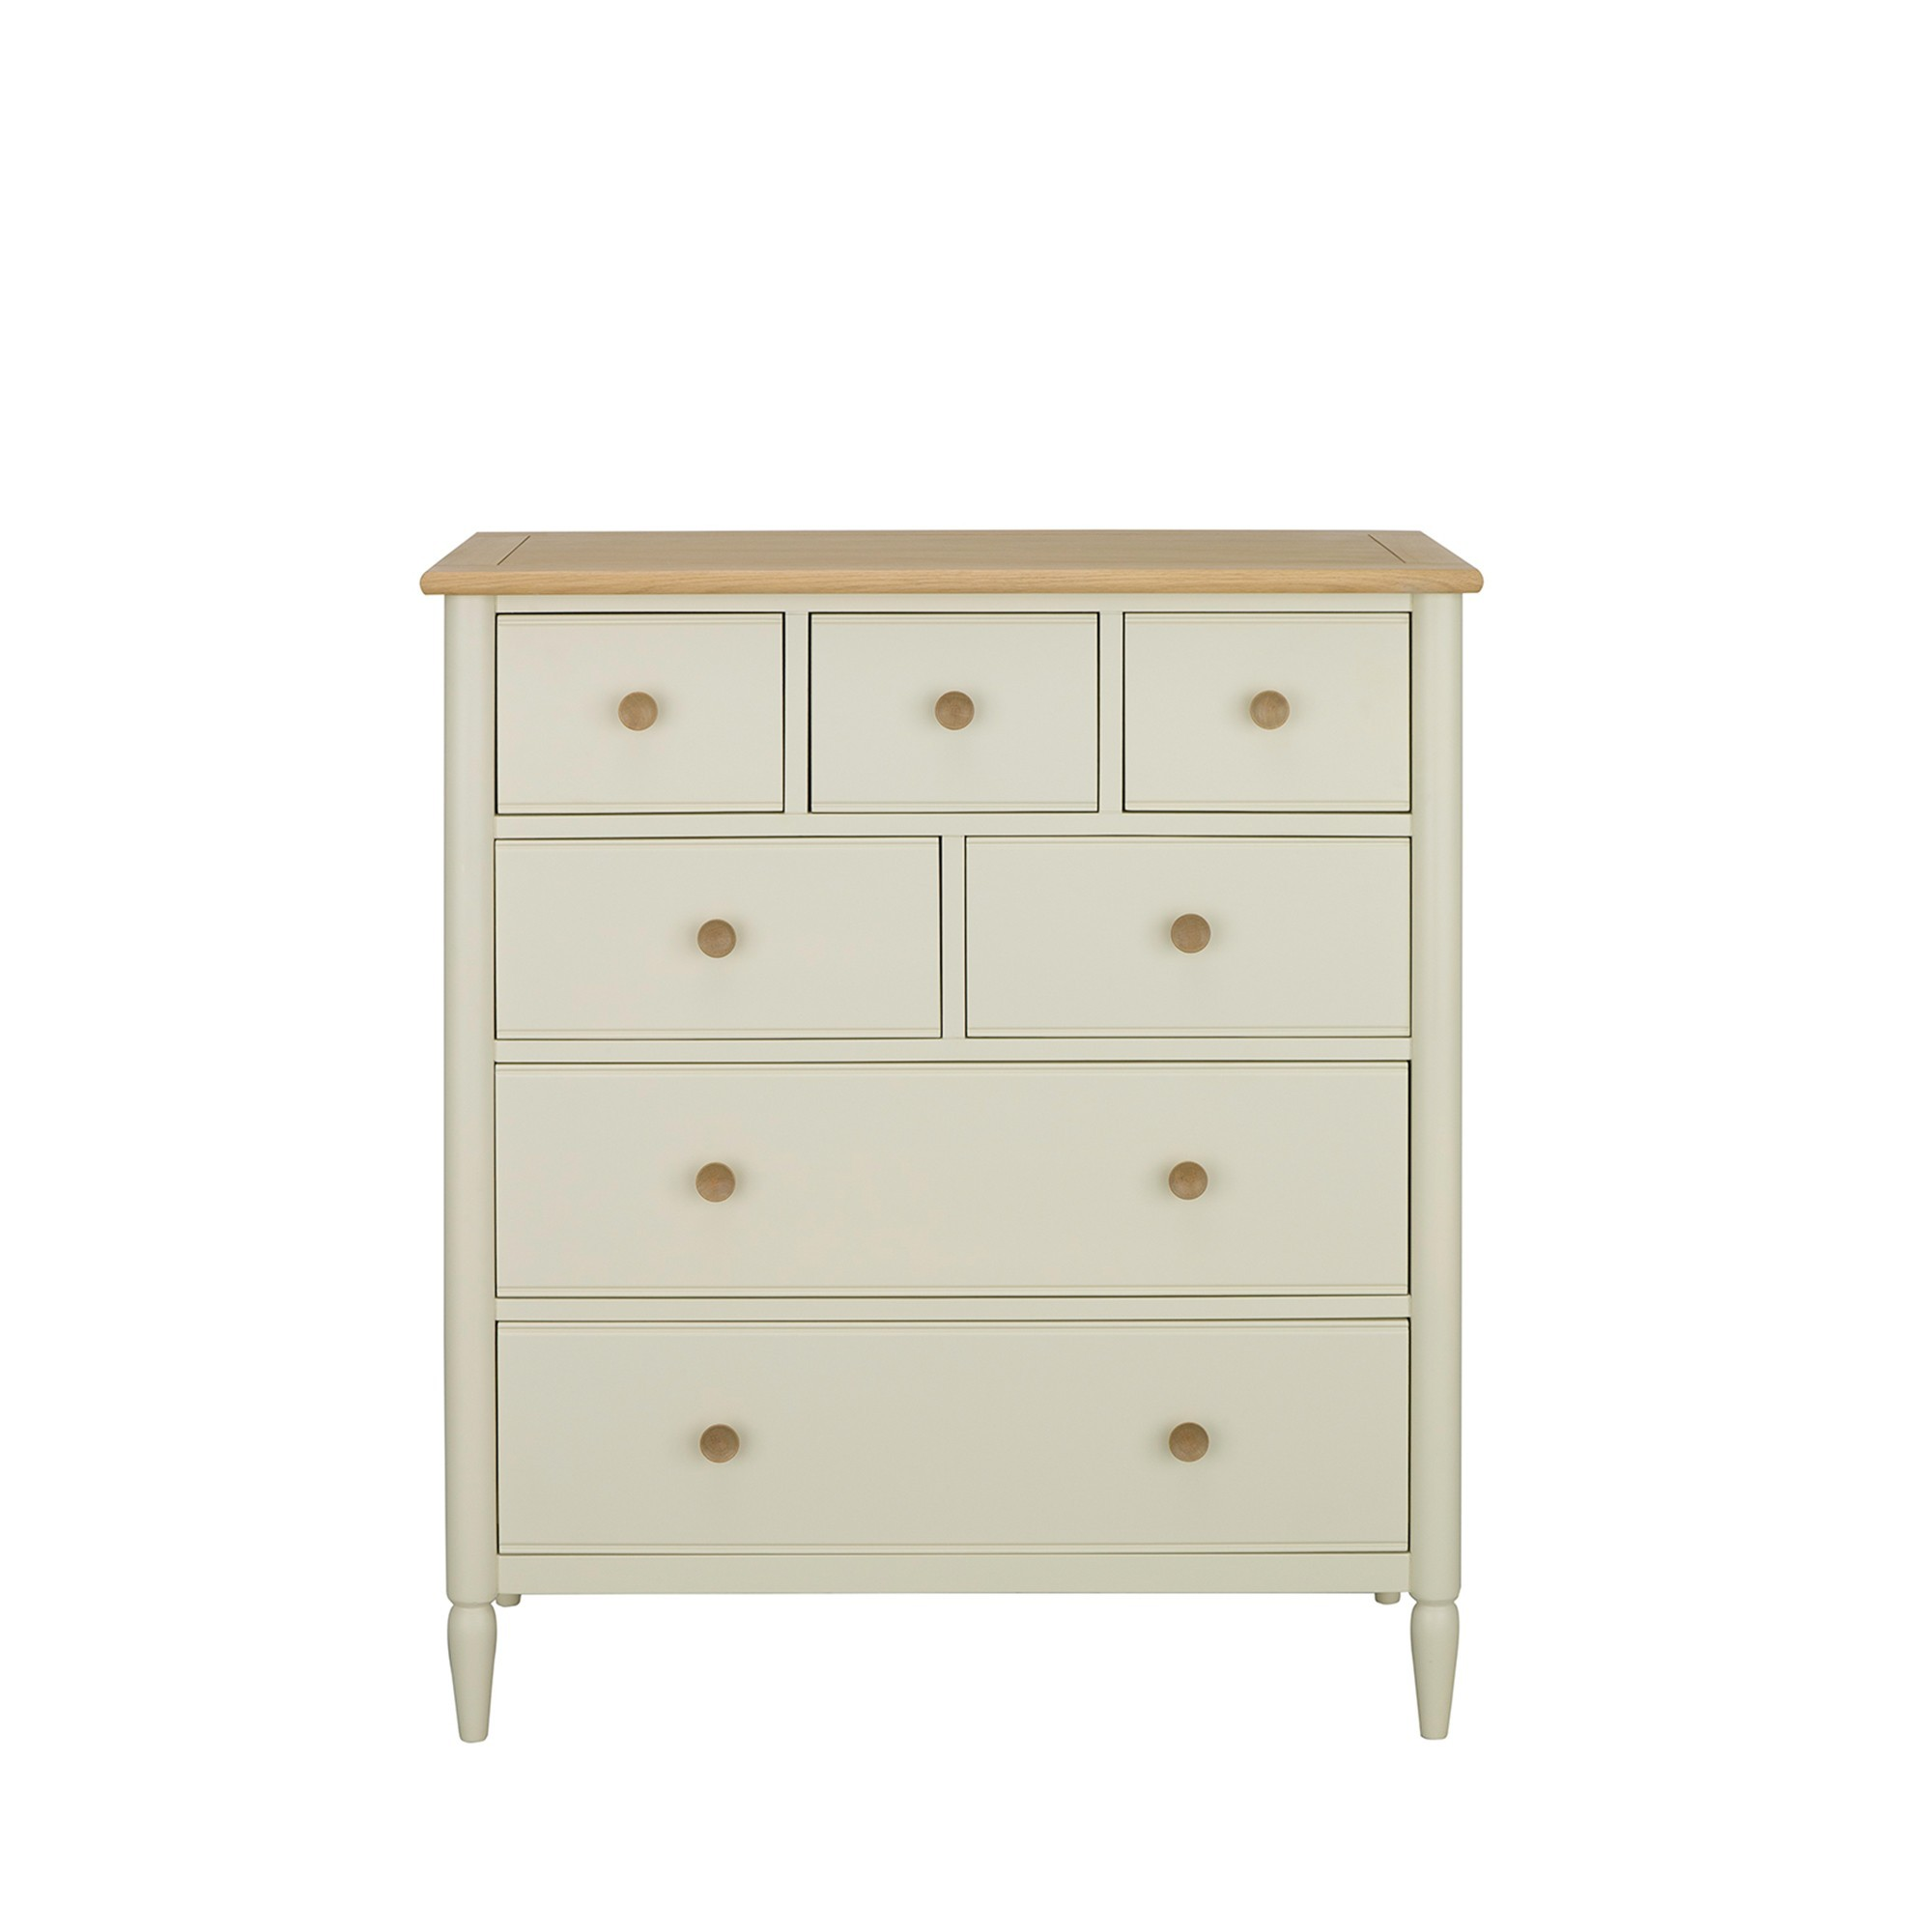 Tall Bedroom Chest Ercol Piacenza 7 Drawer Tall Wide Chest Bedroom Chests Cookes